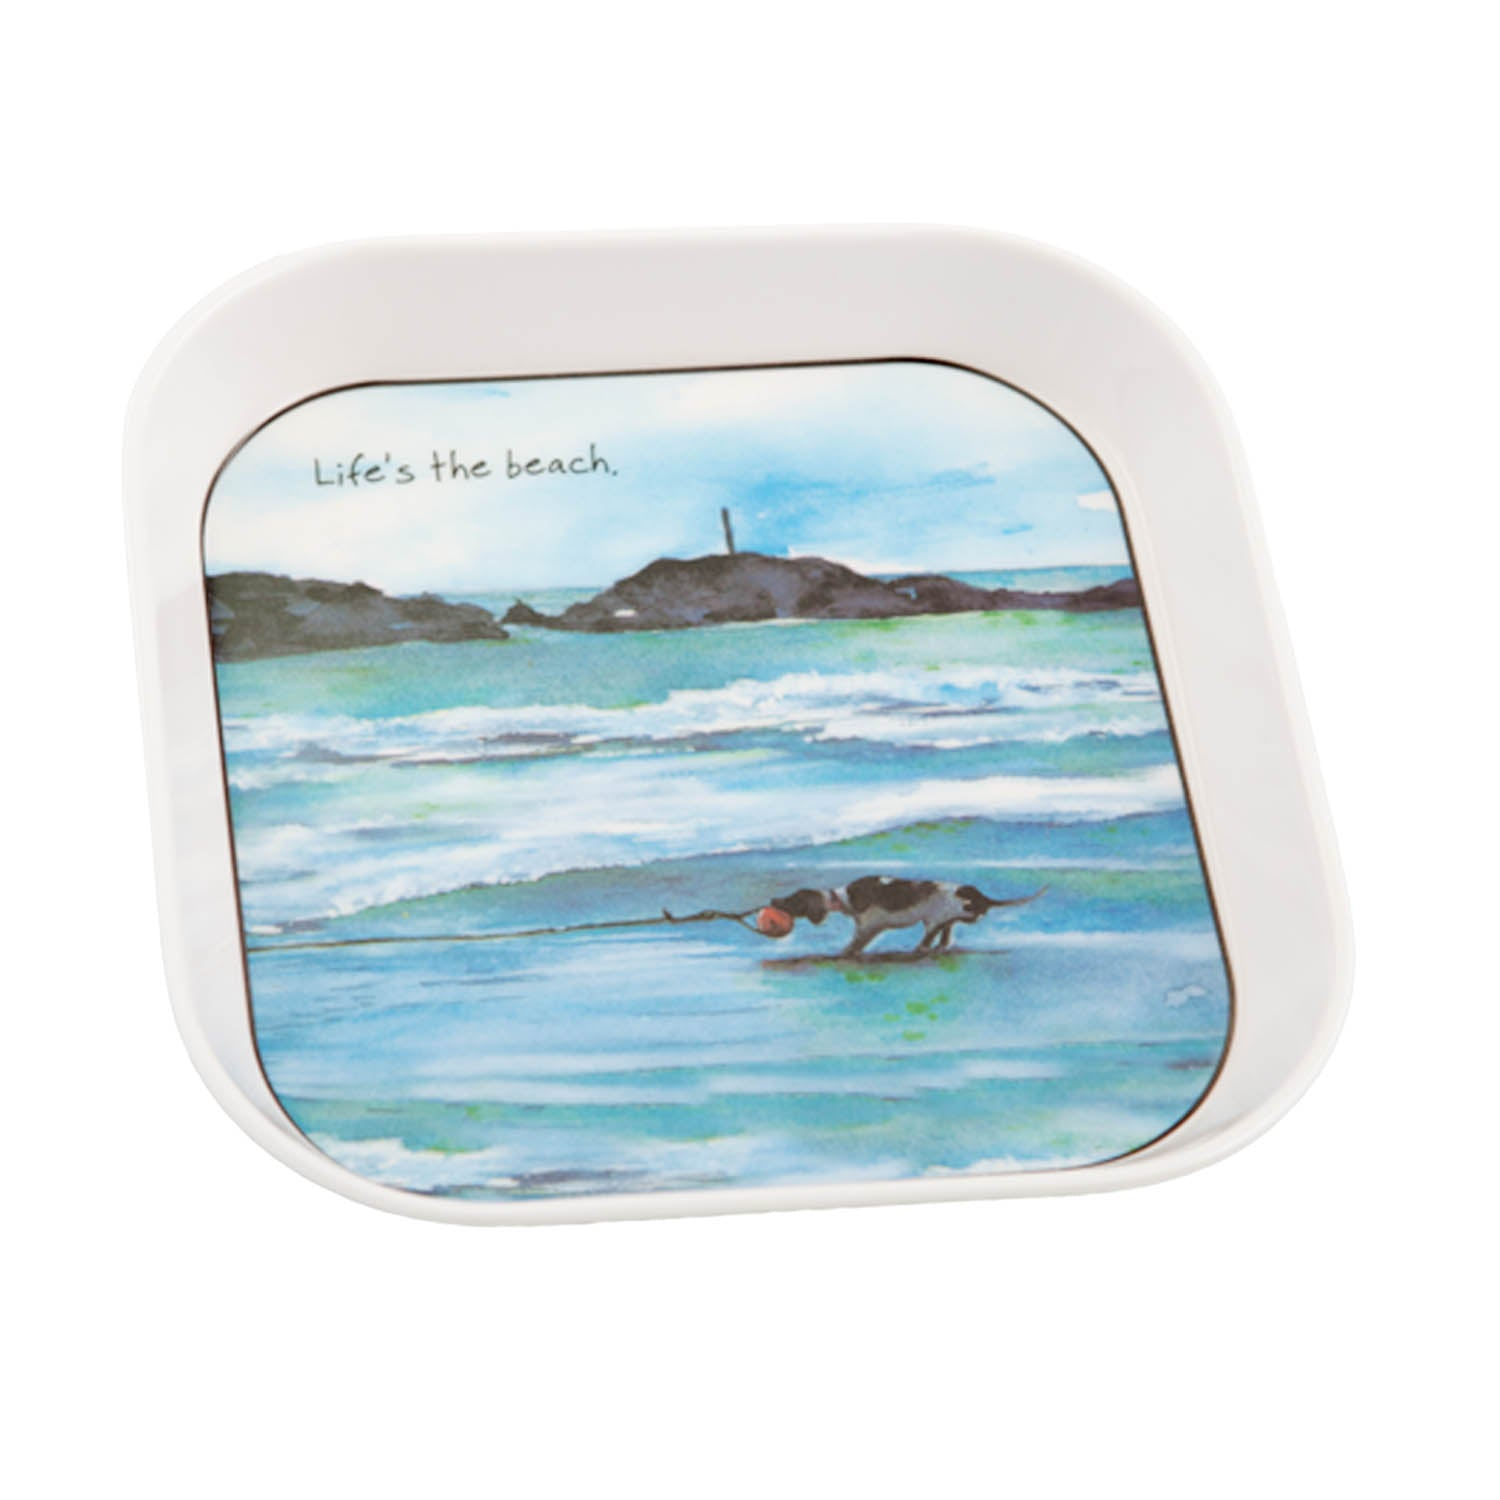 DogKrazyGifts - Life's The Beach Trinket or Mug Tray - Part of the digs & manor range available from Dog Krazy GiftsL